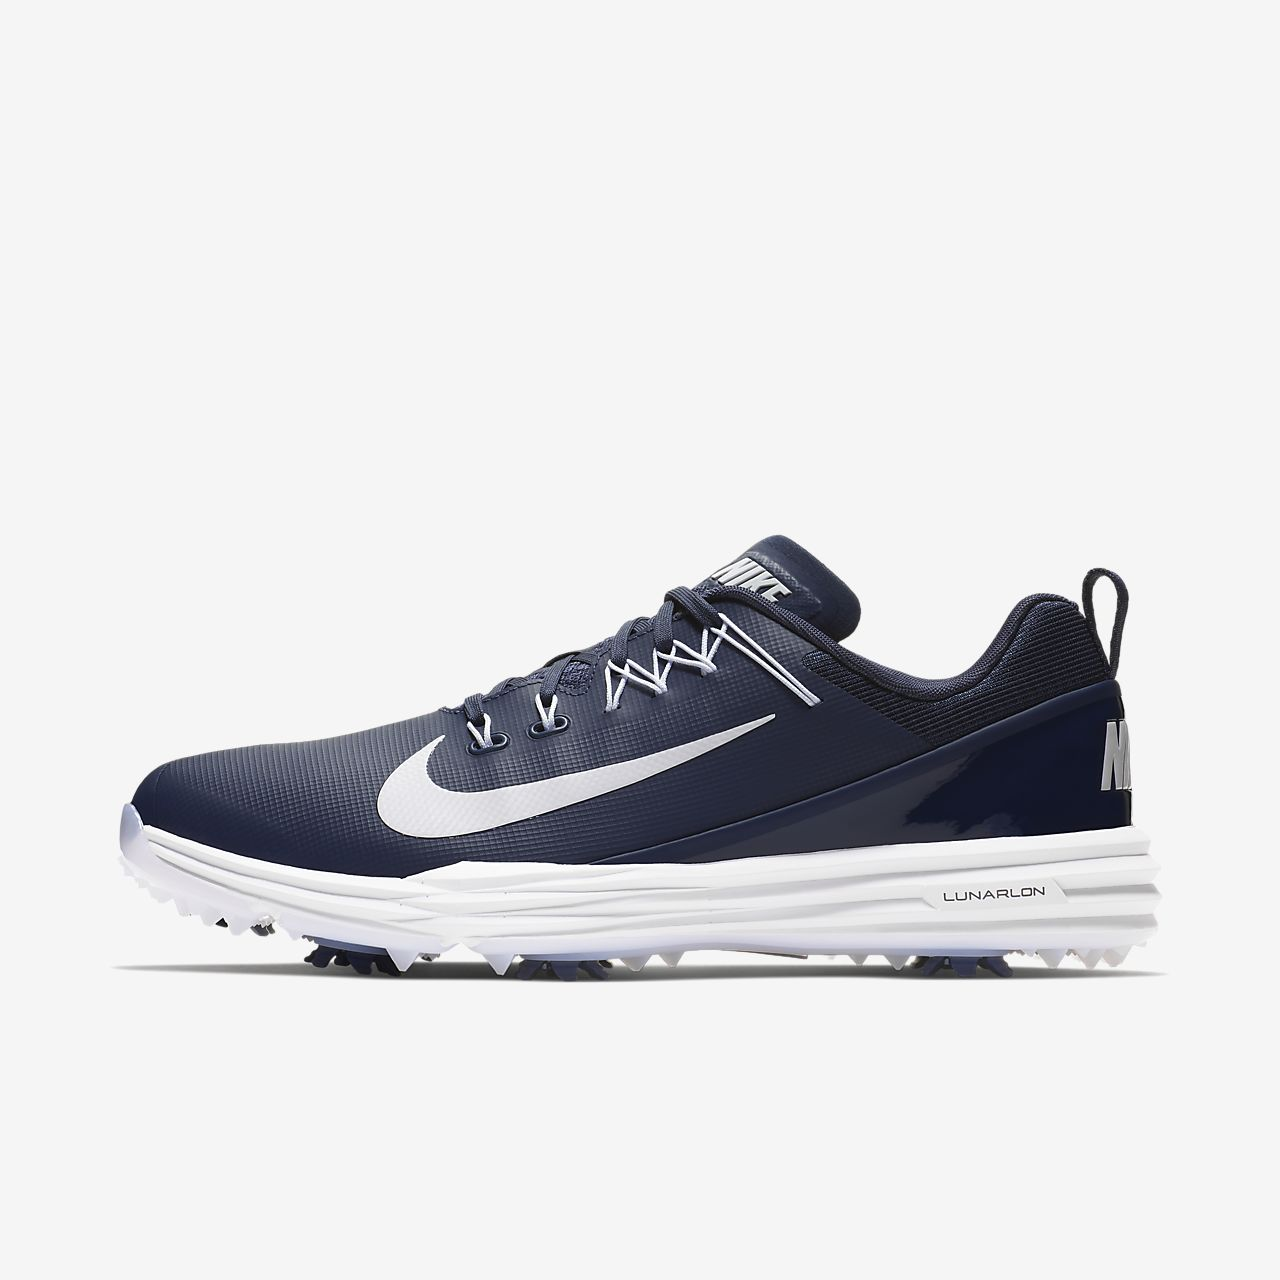 Nike Lunar Golf Shoes Australia